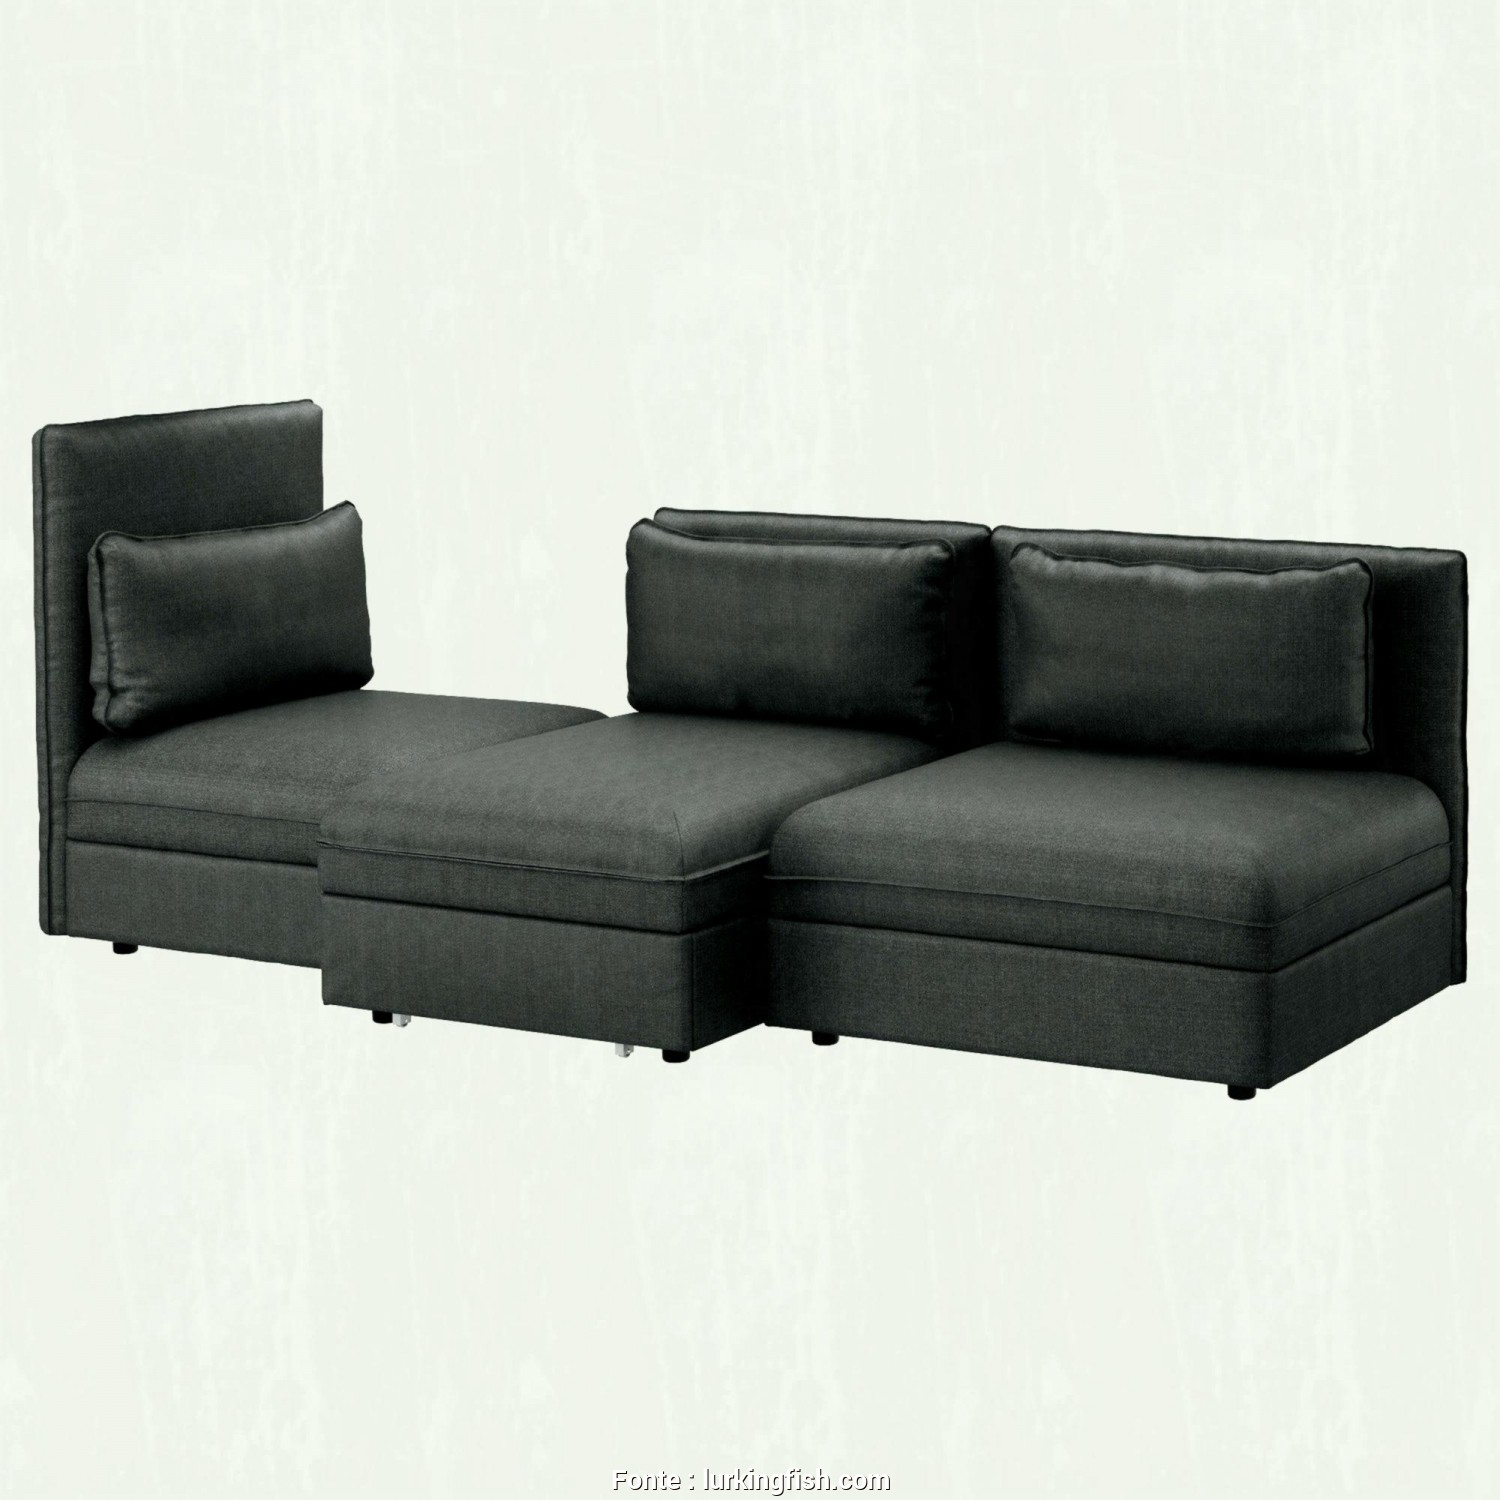 Ikea Vilasund 2 Seat Sofa, Review, Favoloso Ikea Vallentuna Seat Sofa With, Beds Futons Hillared Dark Greypes